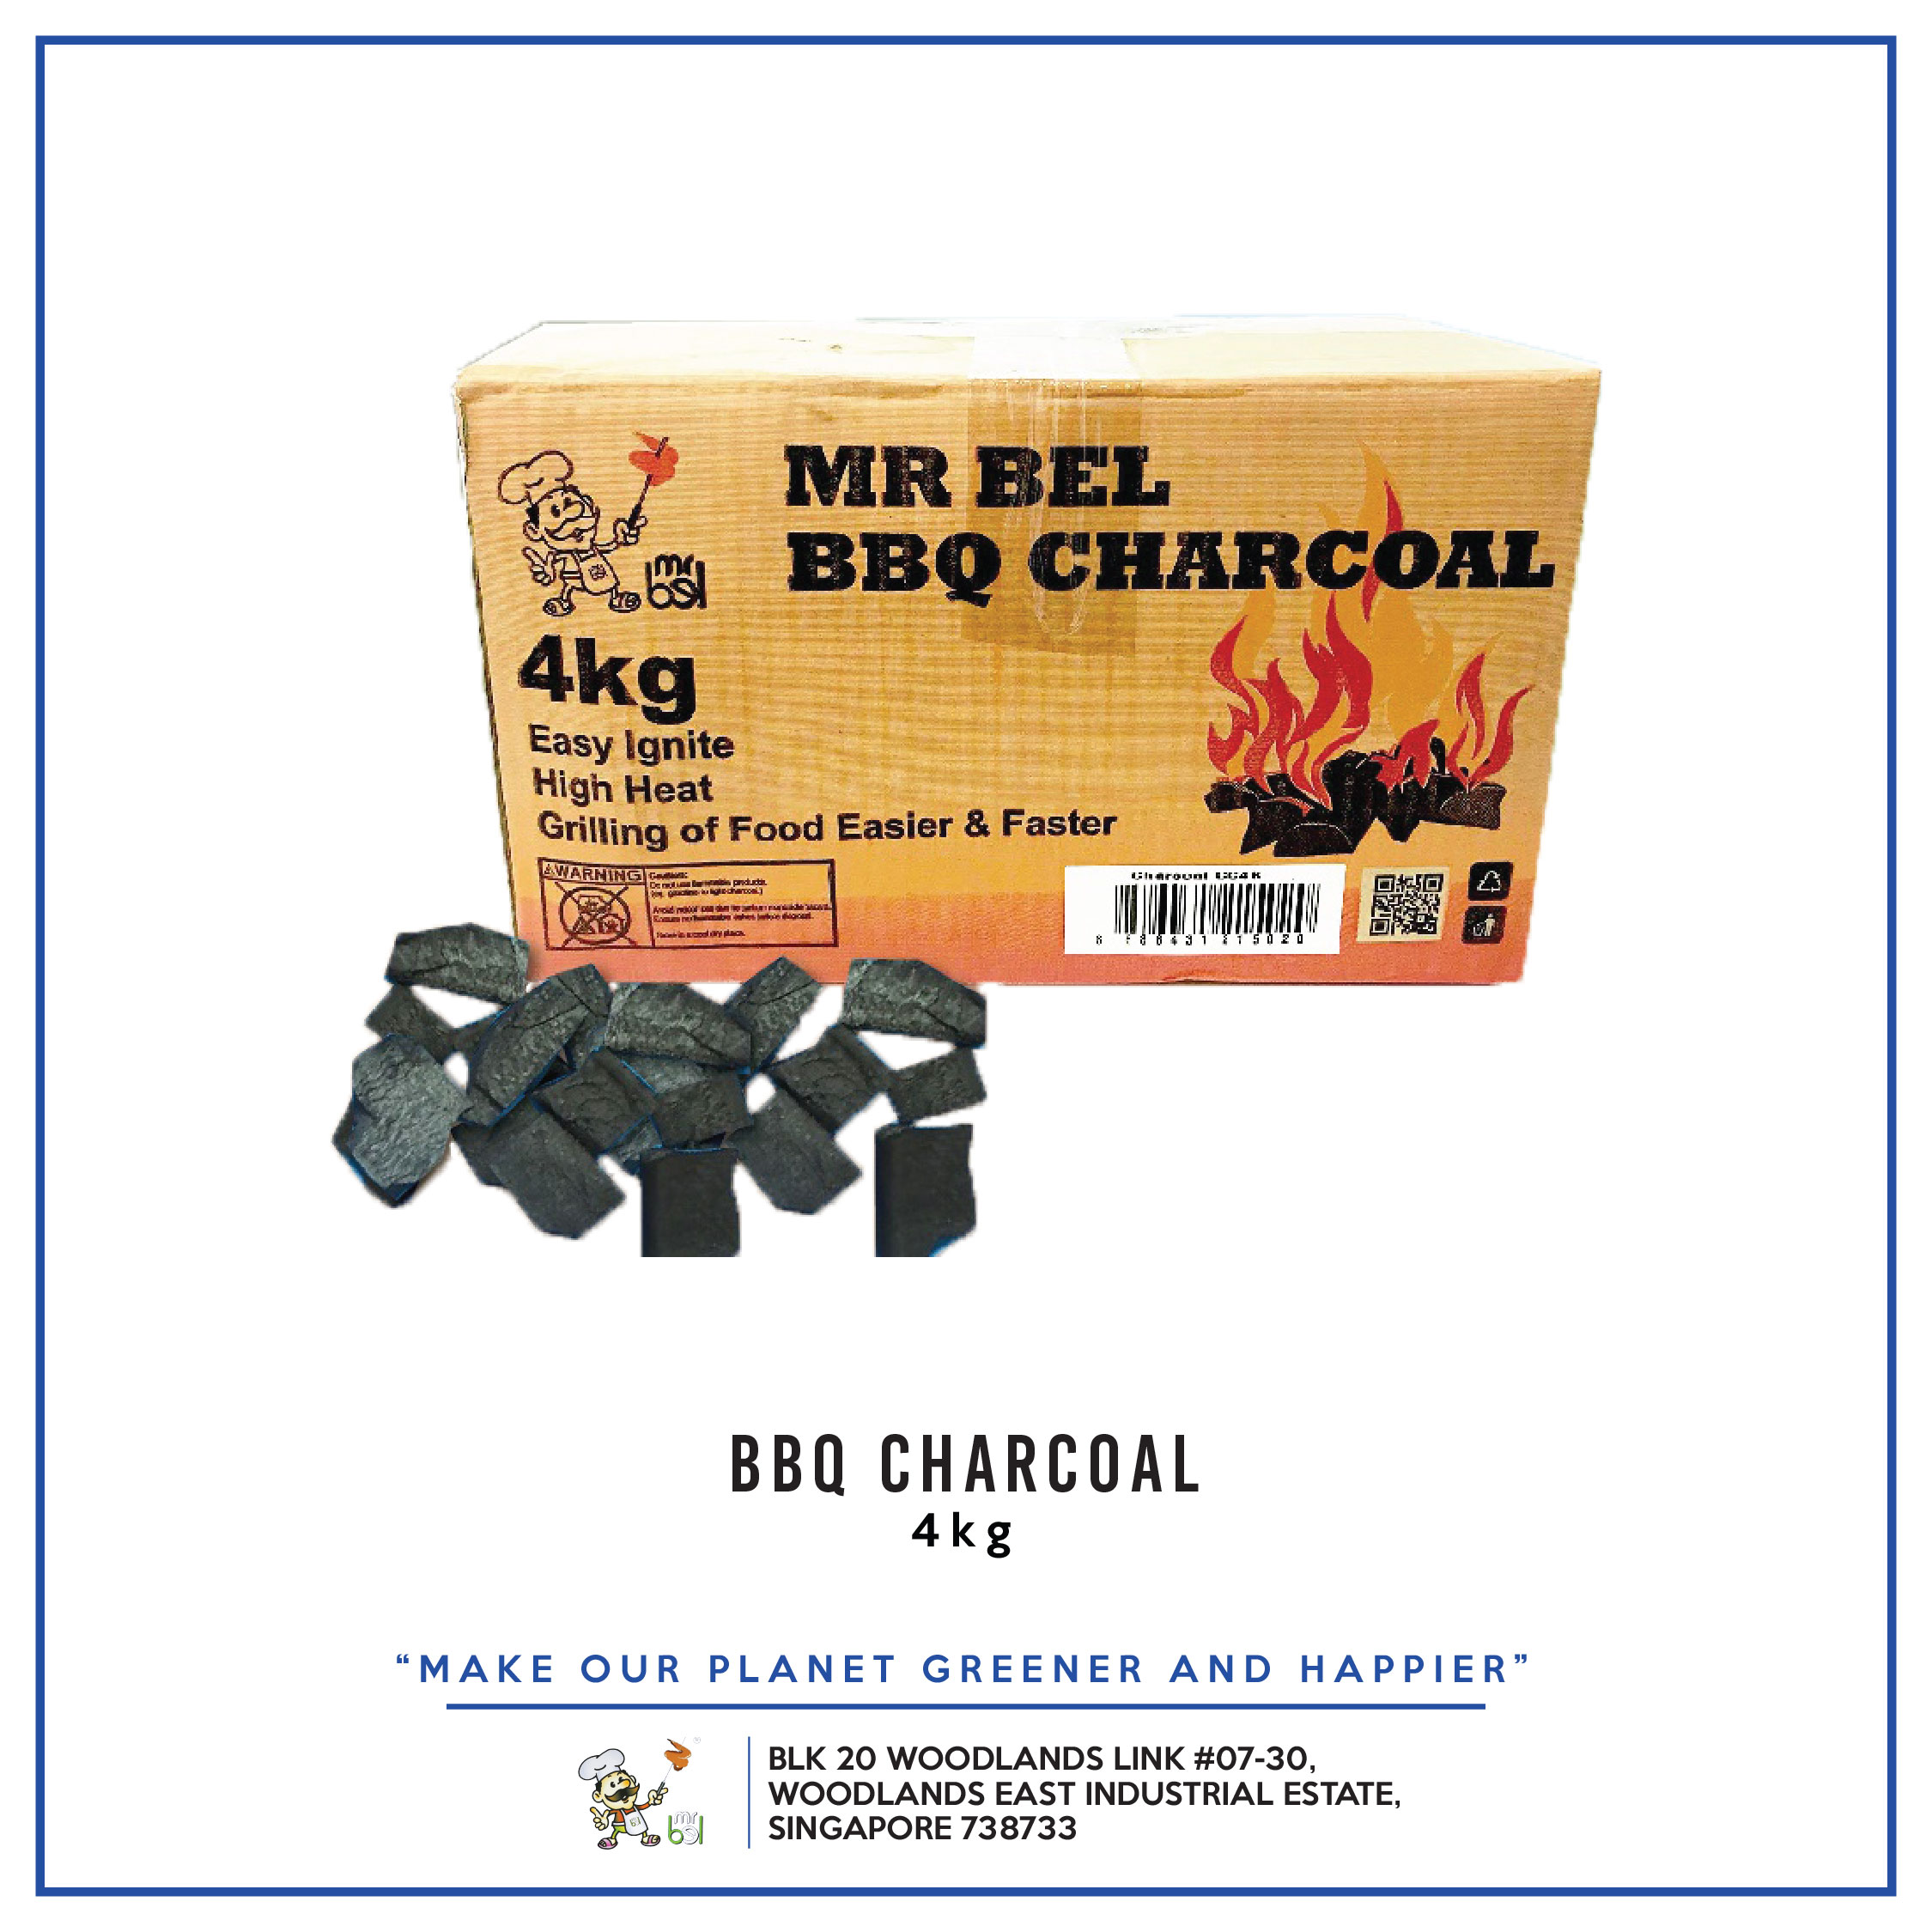 BBQ Charcoal 4KG per pack - 1 Carton (6packs)